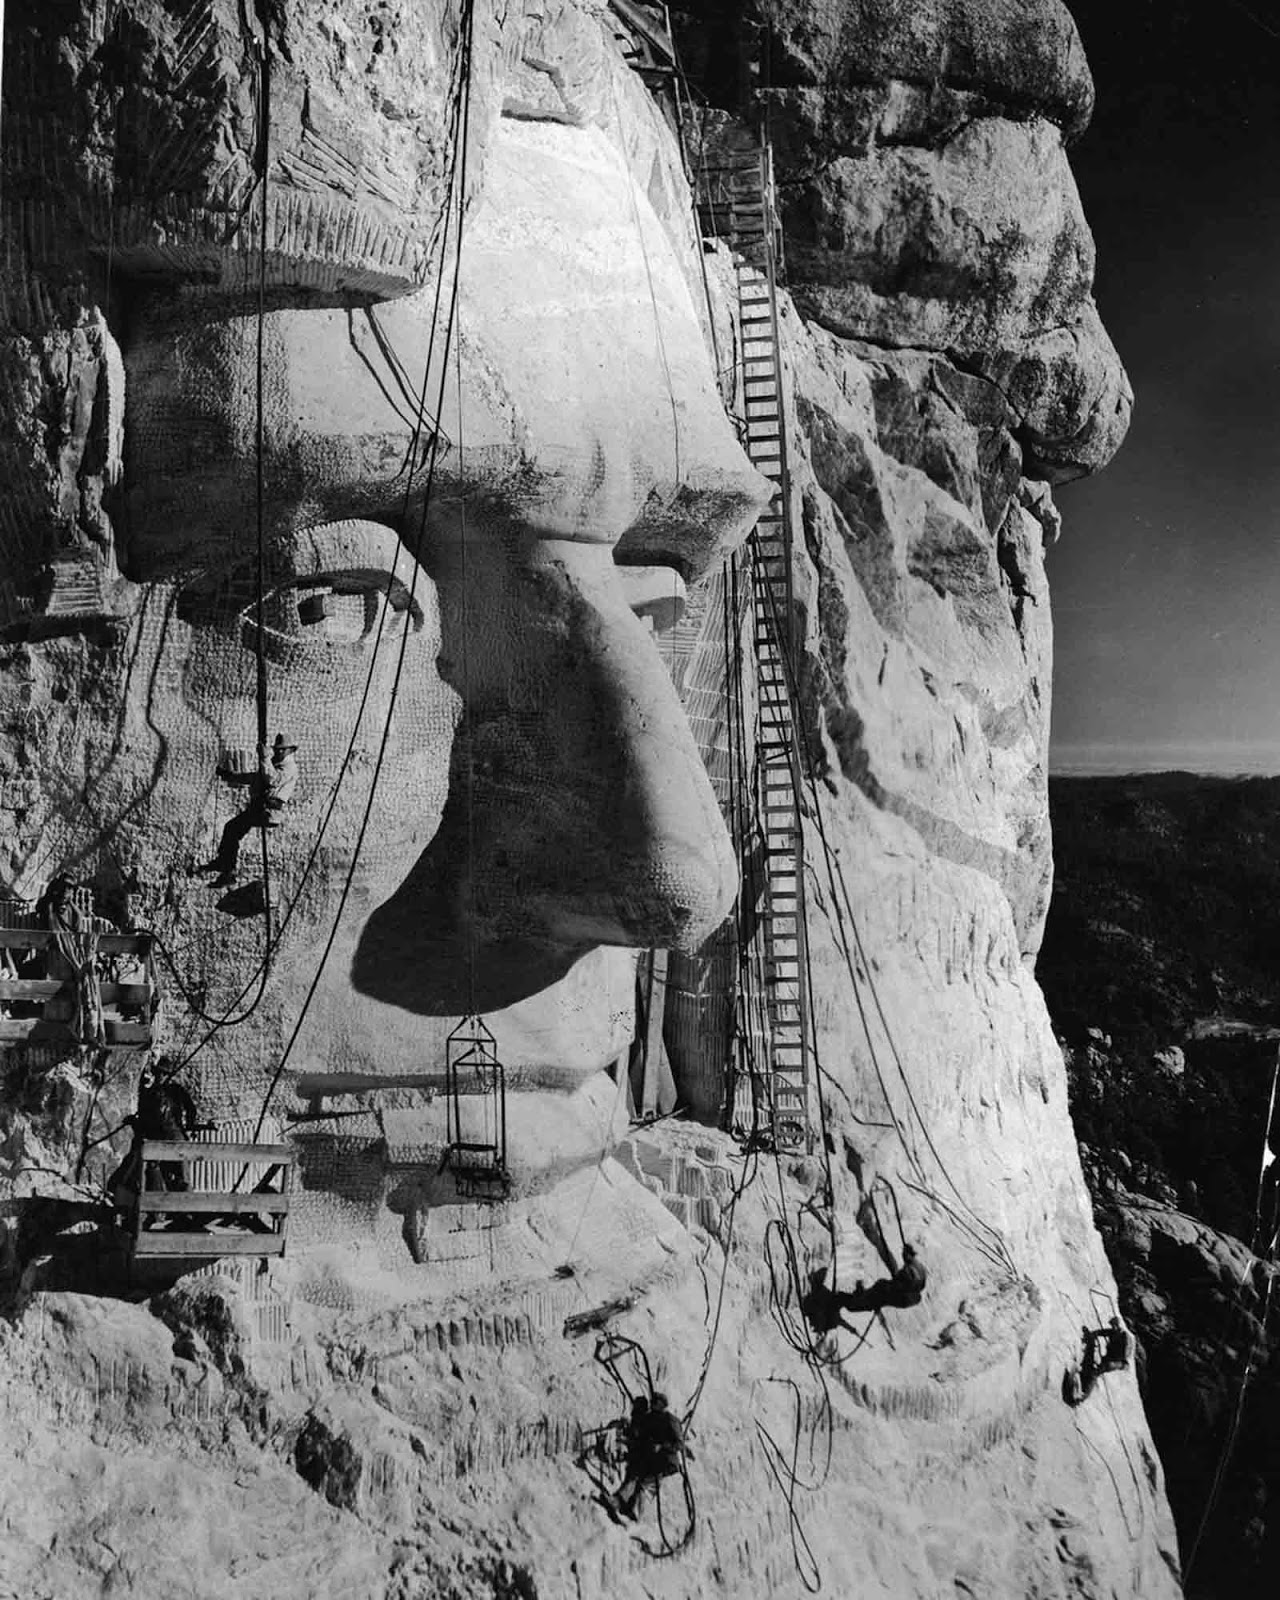 Gutzon Borglum hangs below an eye as his crew works on Abraham Lincoln's head. 1935.